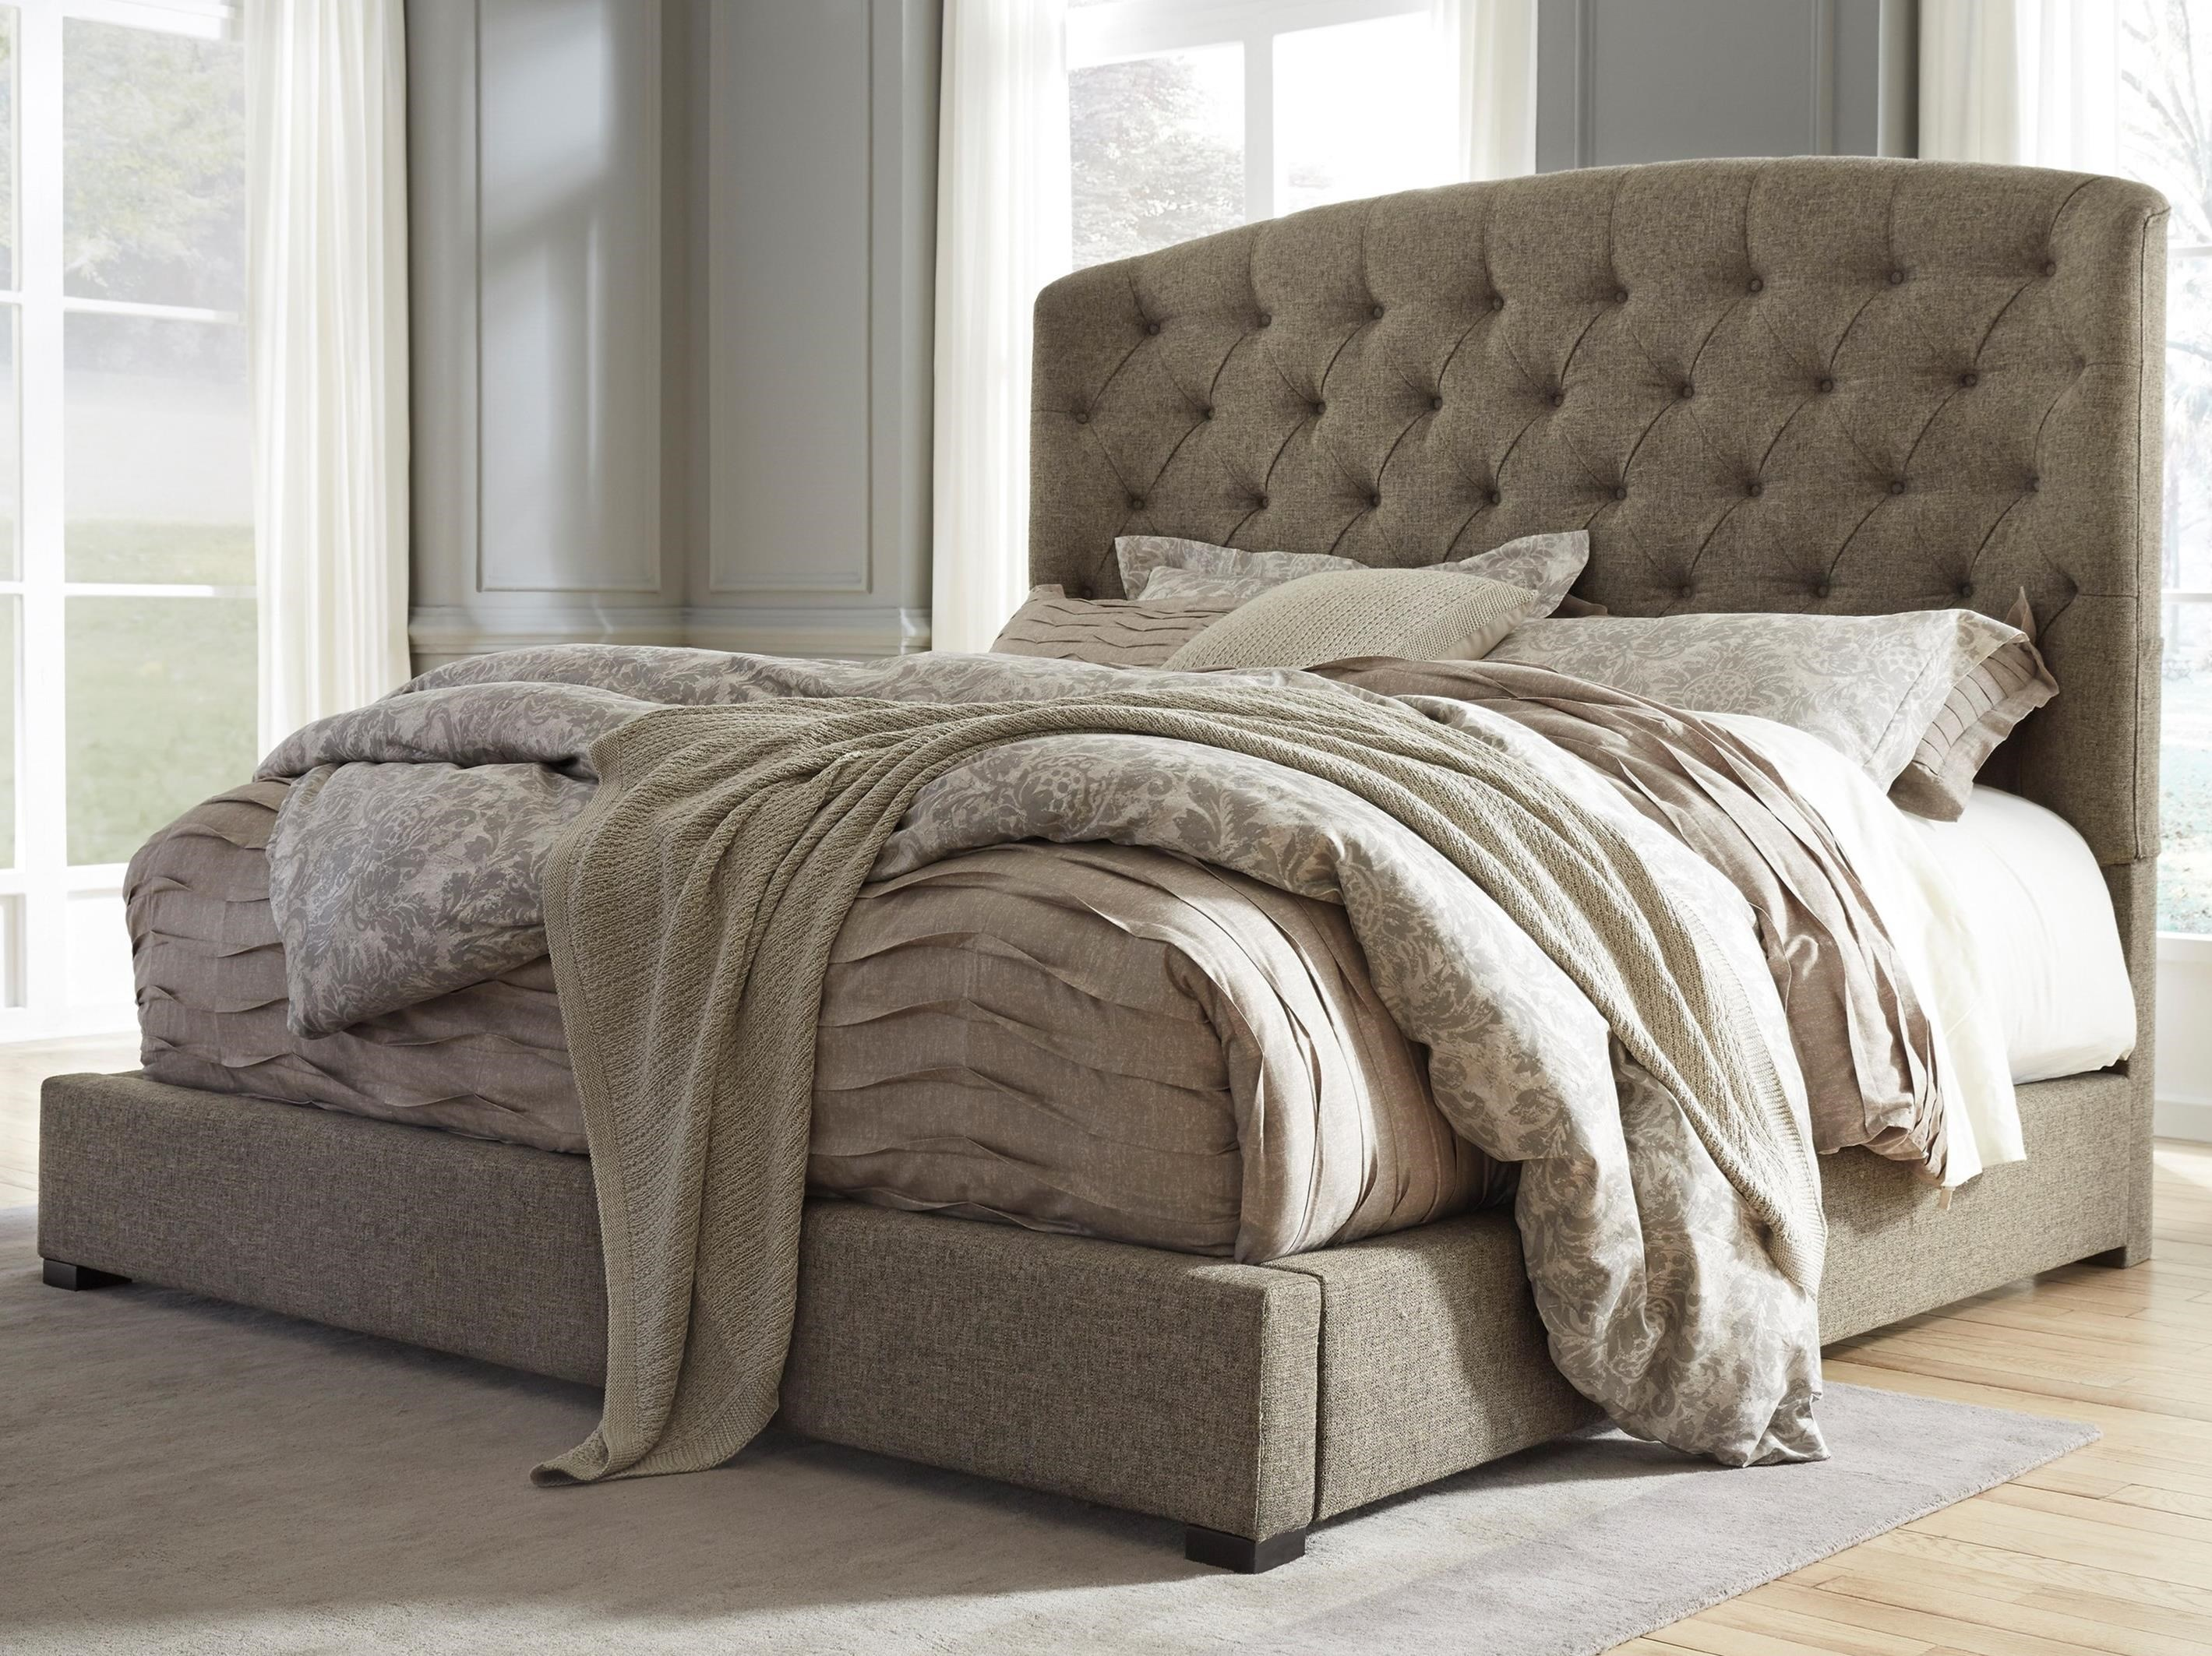 Signature design by ashley gerlane queen upholstered bed with arched tufted headboard and low Home furniture queen size bed